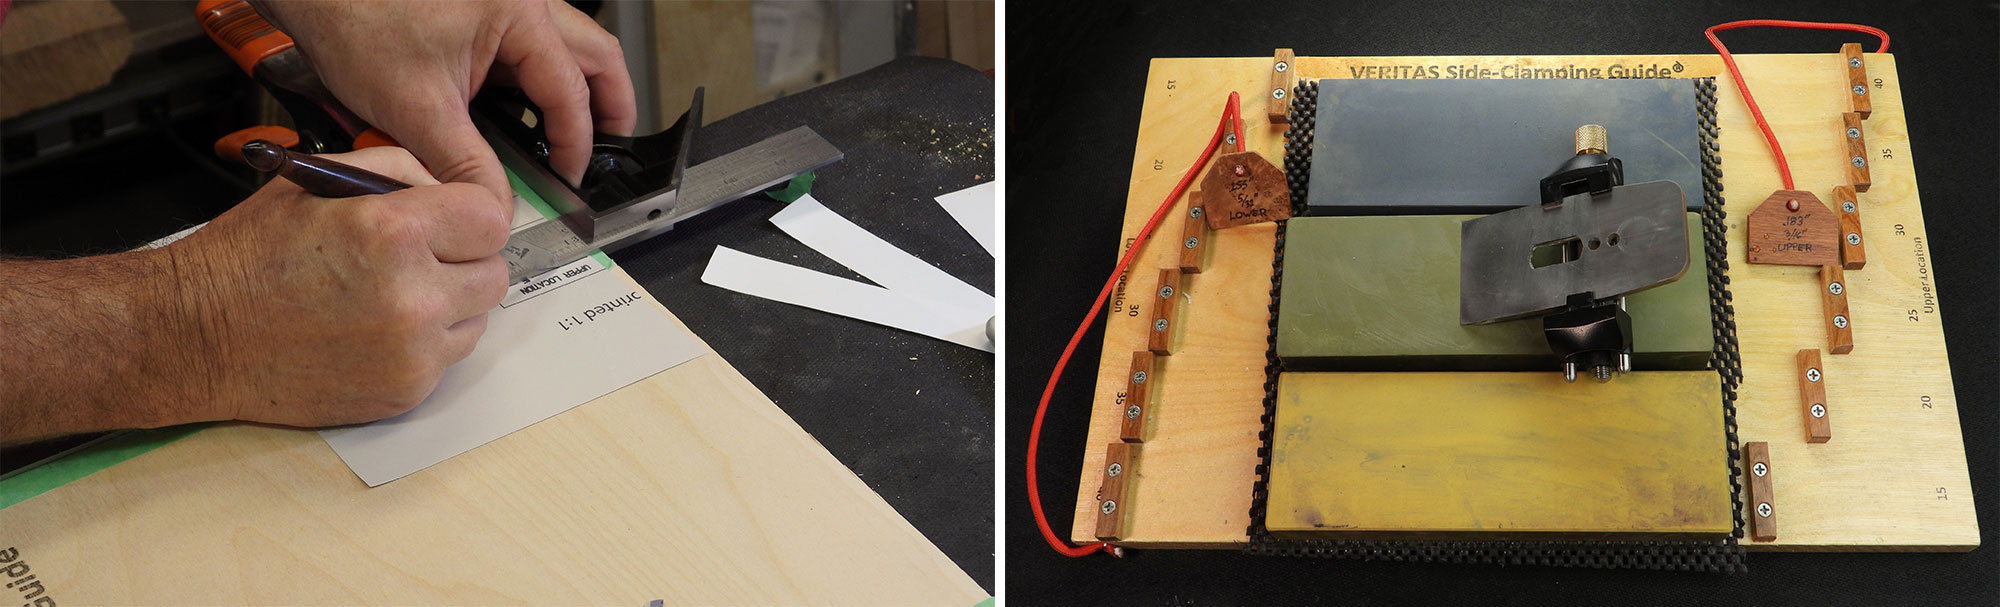 Image left: Marking the stop block locations. Image right: Stop-style jig with glued blocks.